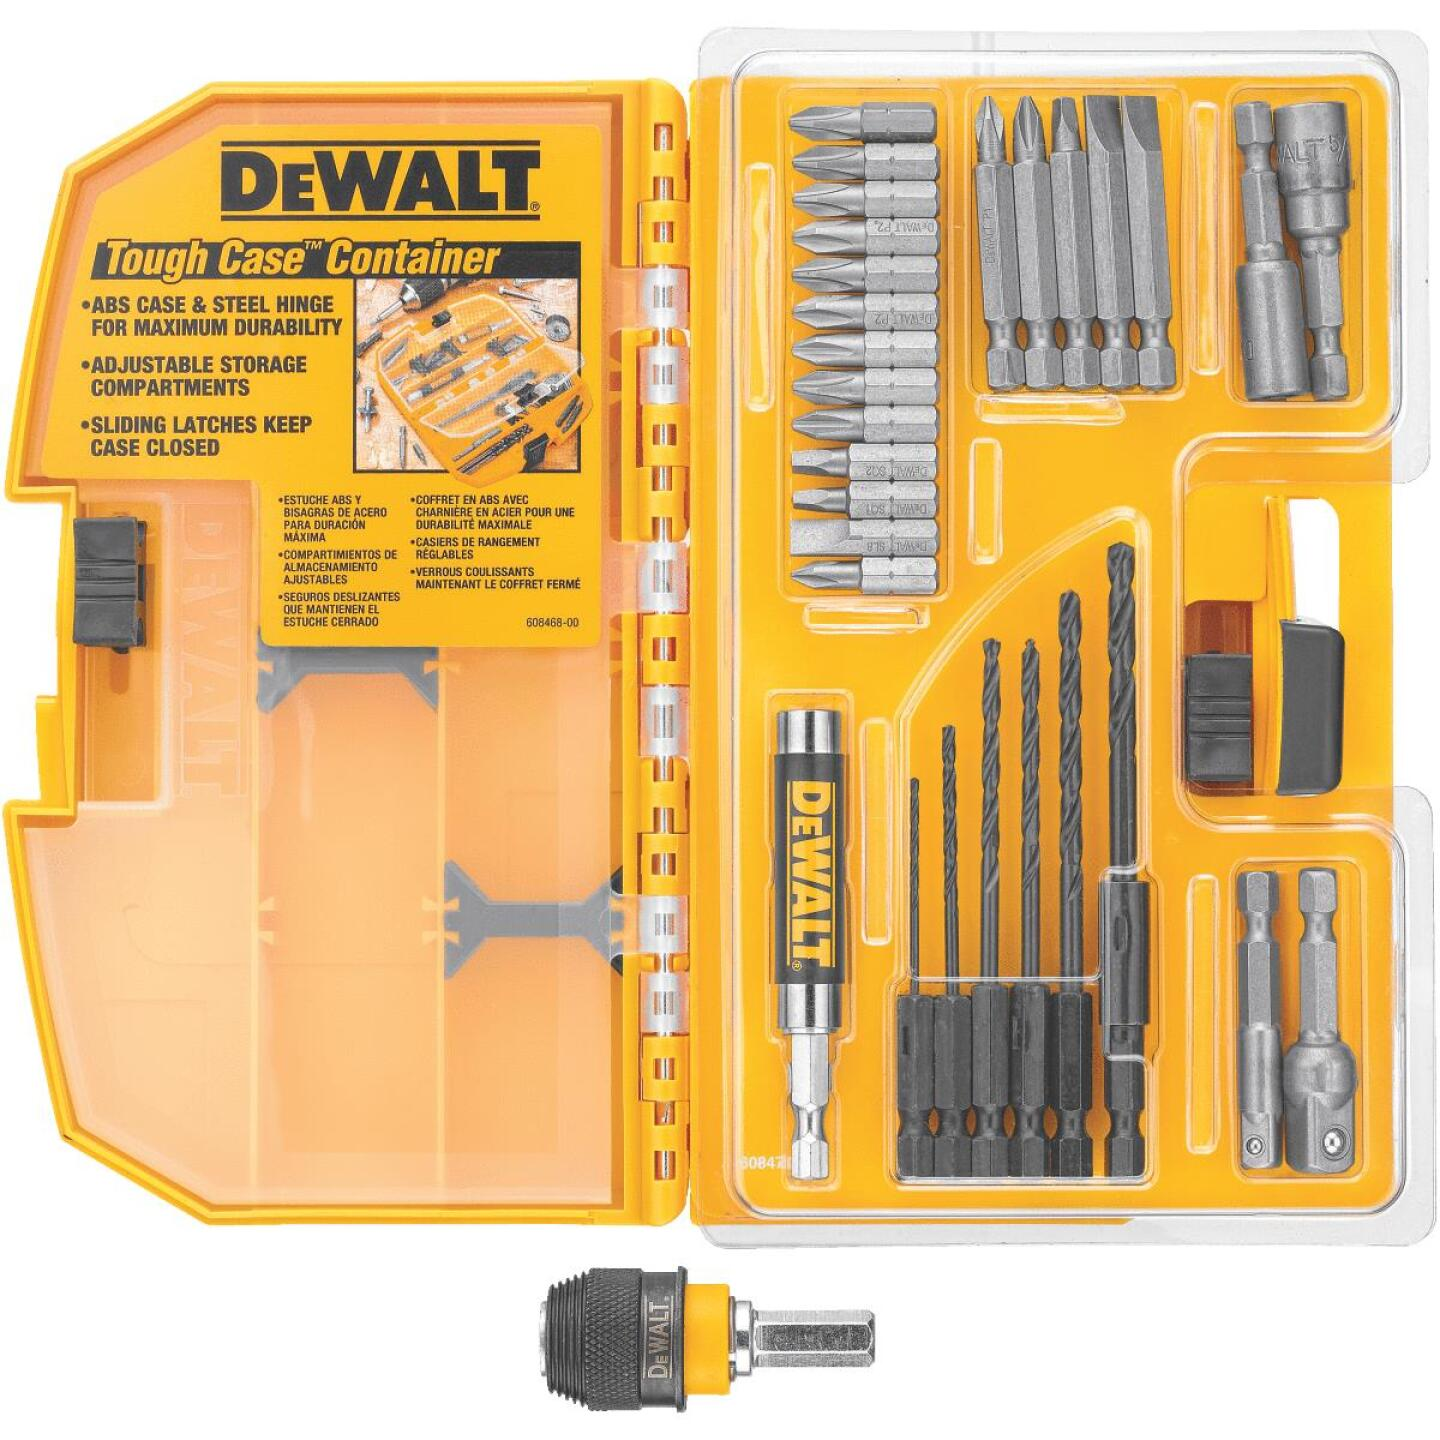 DeWalt 30-Piece Rapid Load Drill and Drive Set Image 1